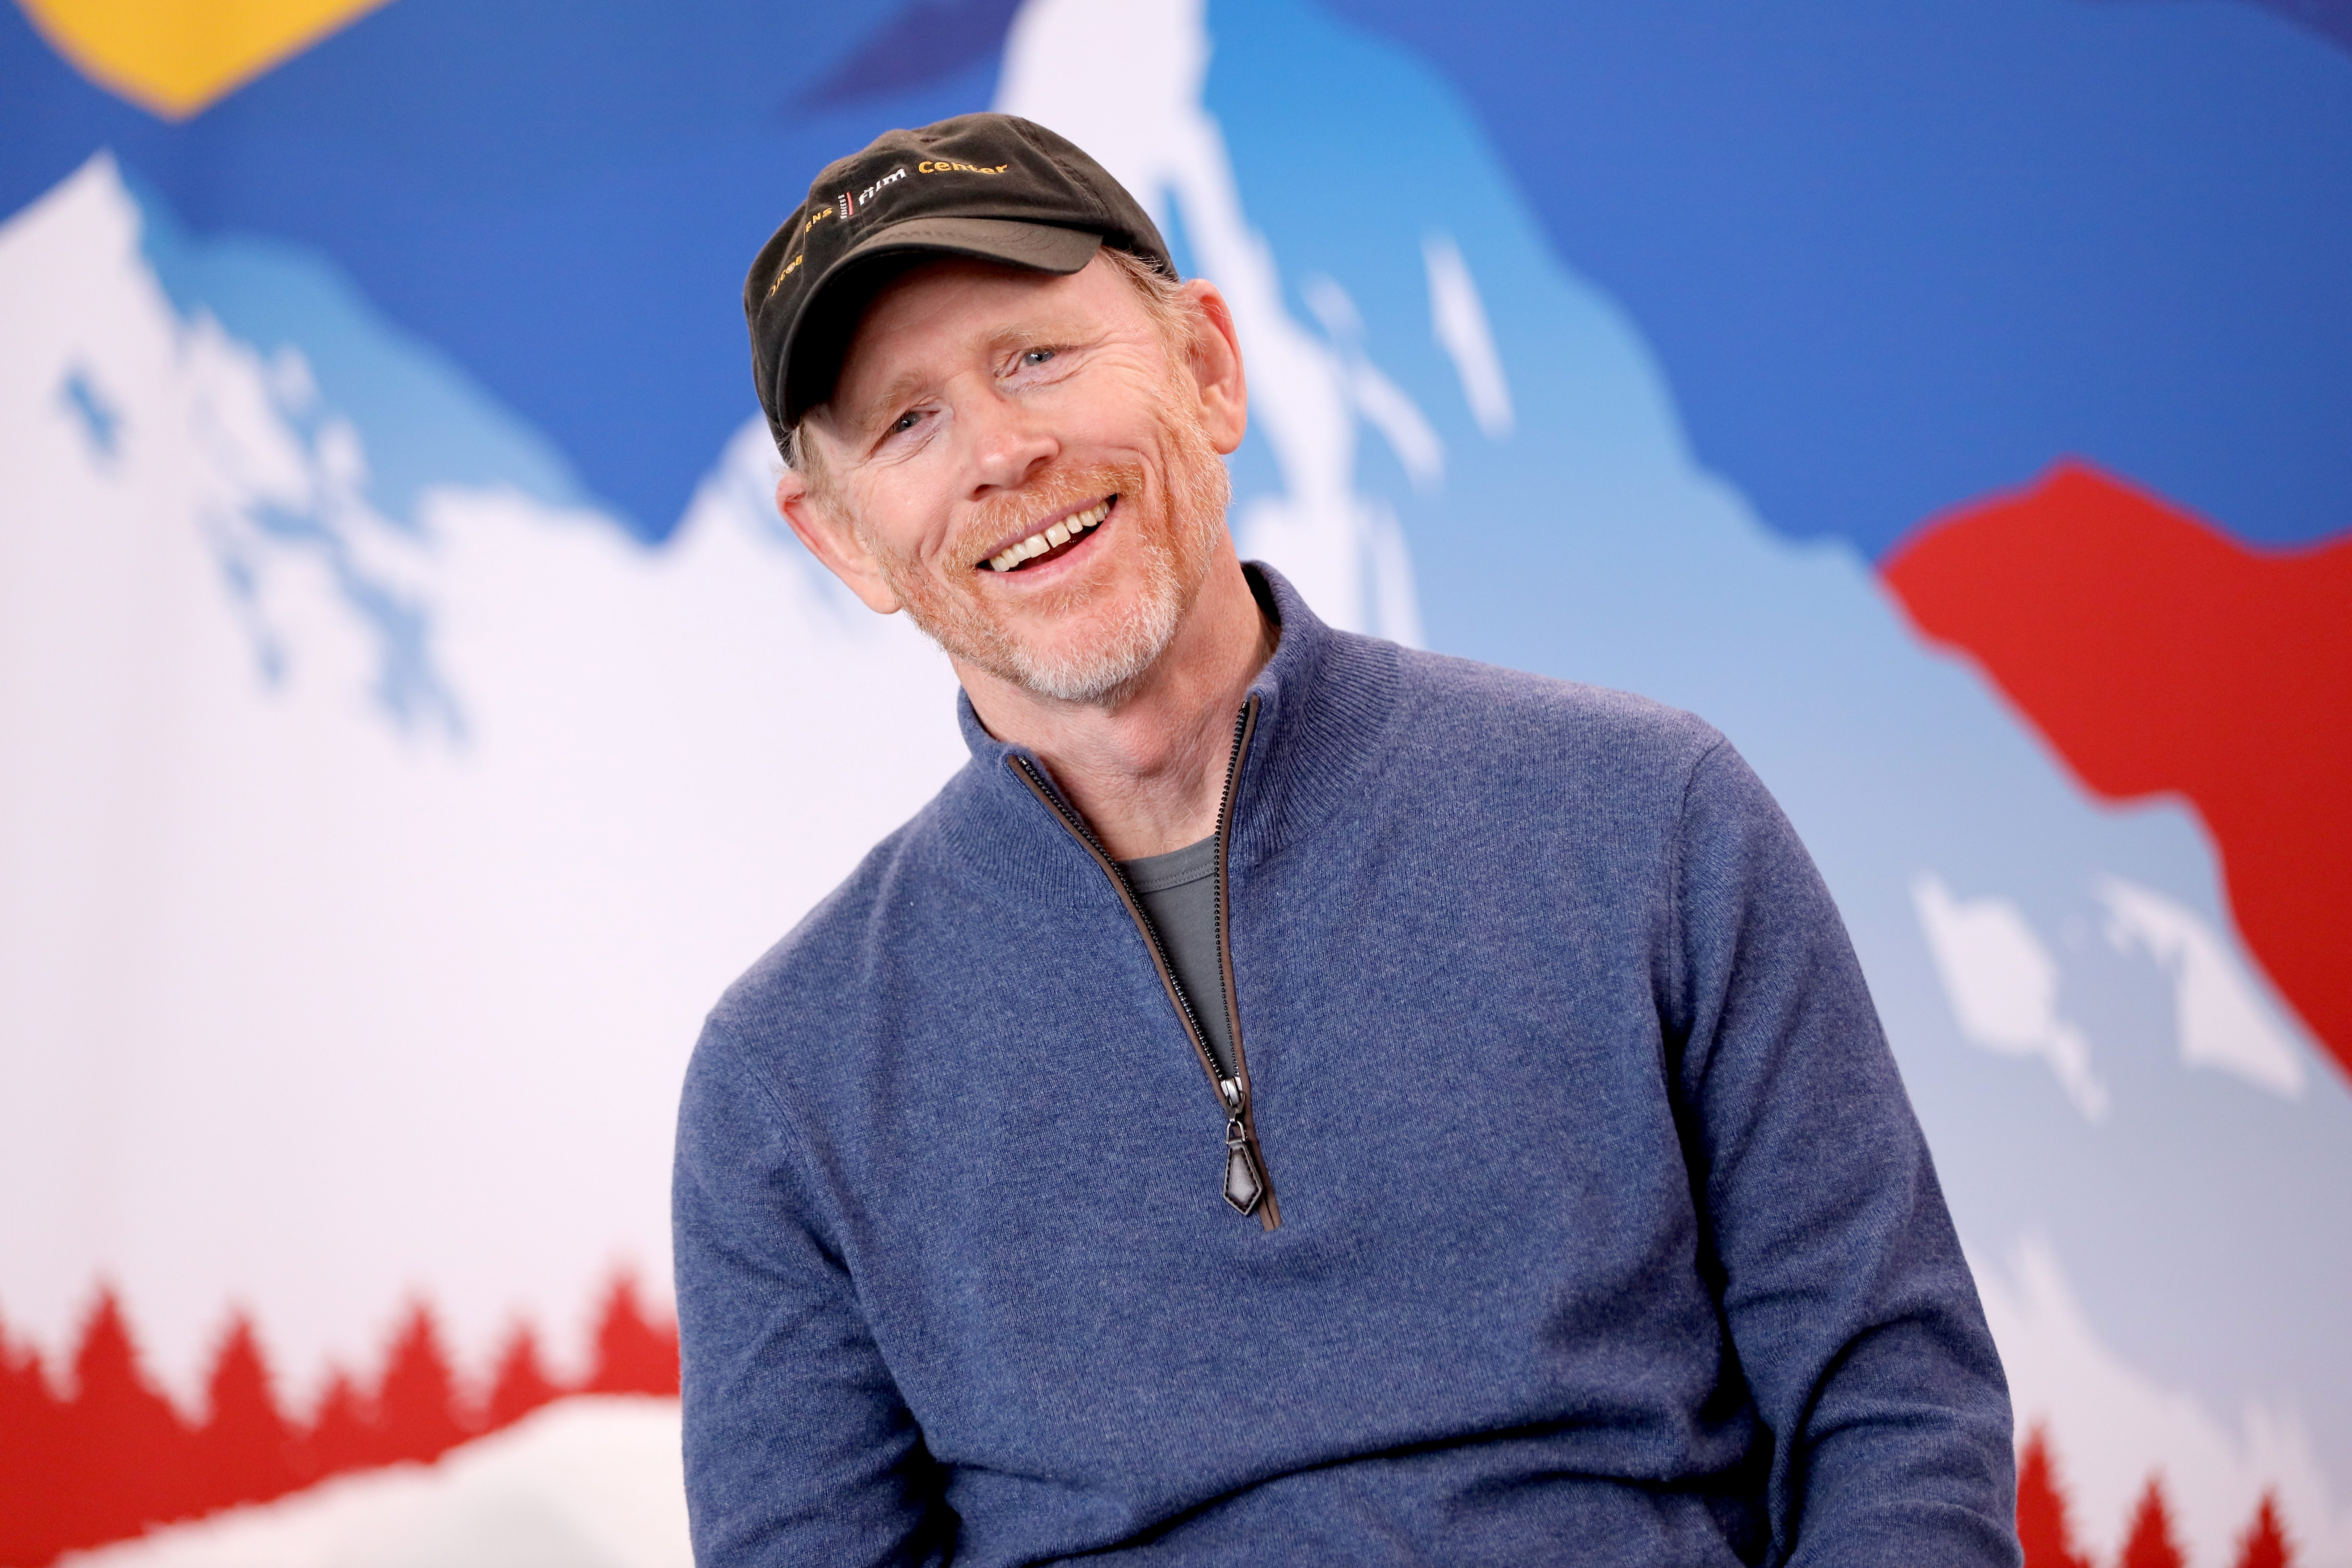 Ron Howard at the IMDb Studio at Acura Festival Village on location at the 2020 Sundance Film Festival on January 24, 2020 in Park City, Utah   Photo: Getty Images